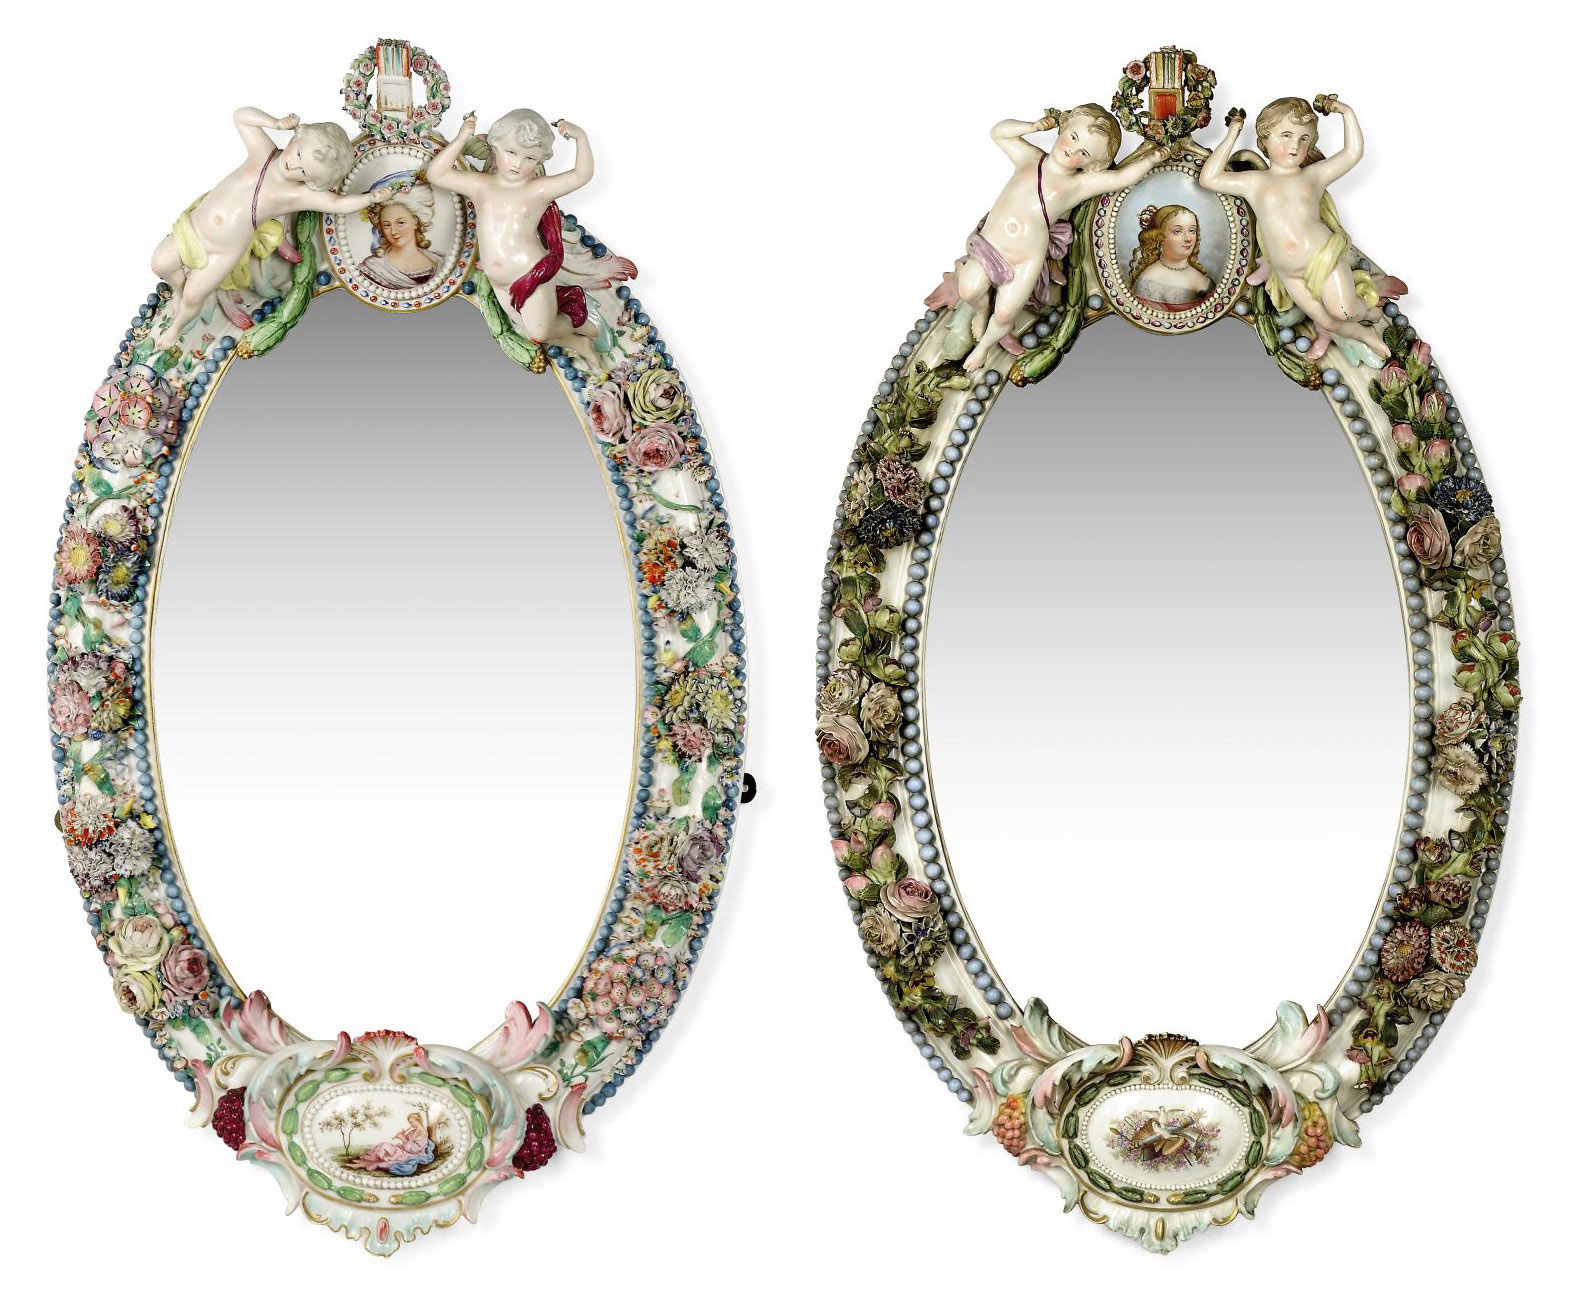 TWO MEISSEN-STYLE OVAL MIRROR FRAMES